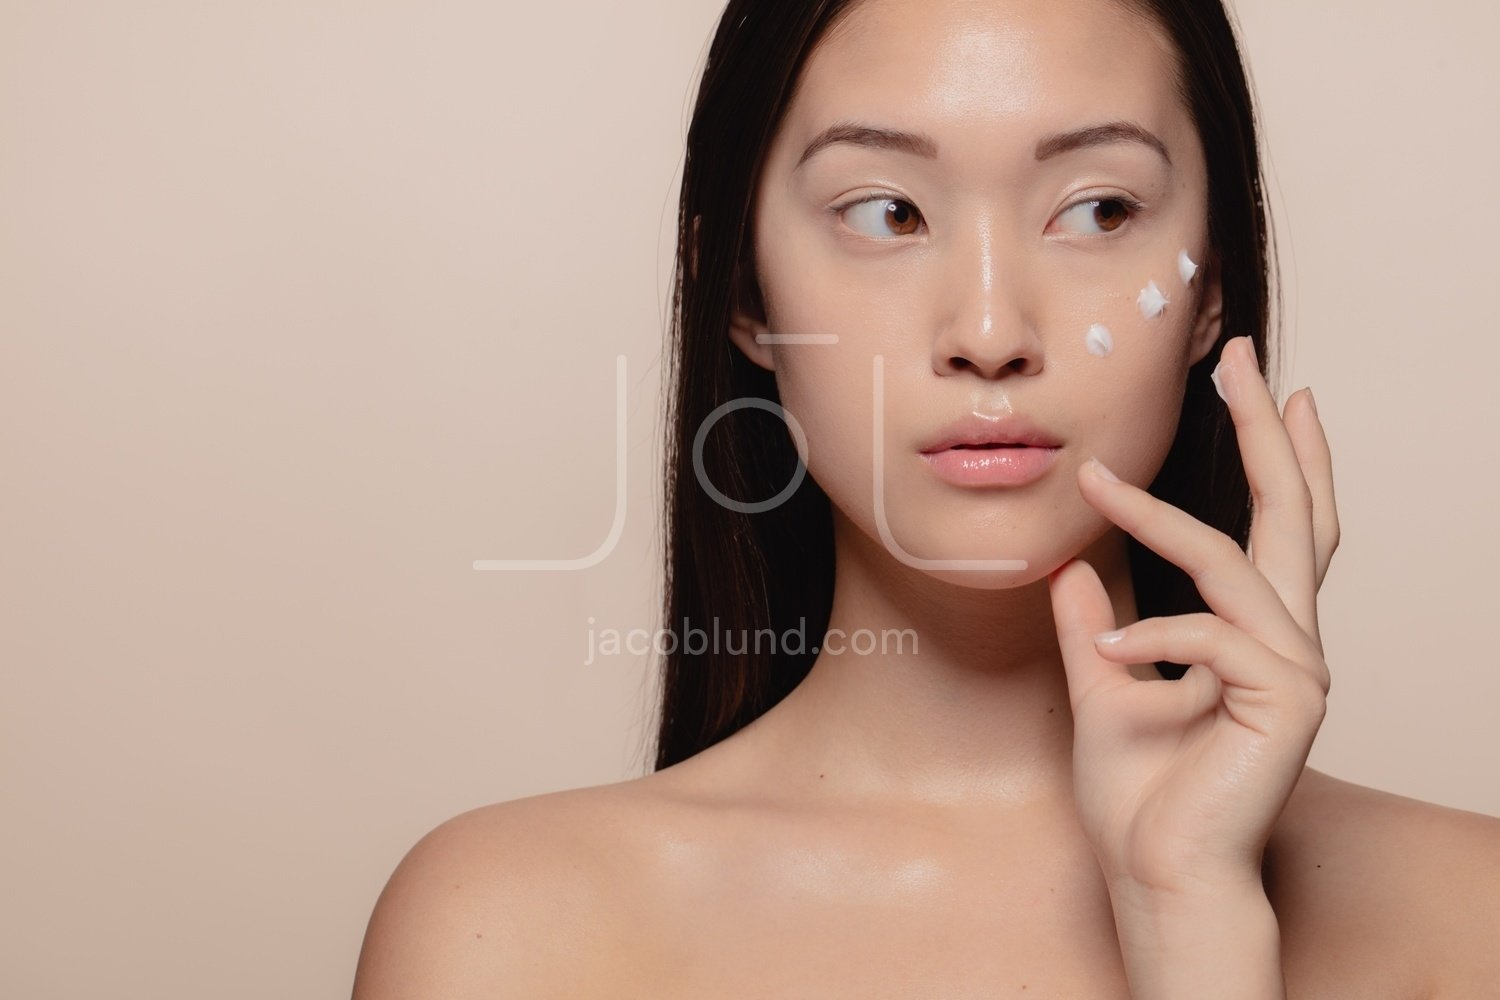 Trying Out A New Skincare Product Jacob Lund Photography Store Premium Stock Photo